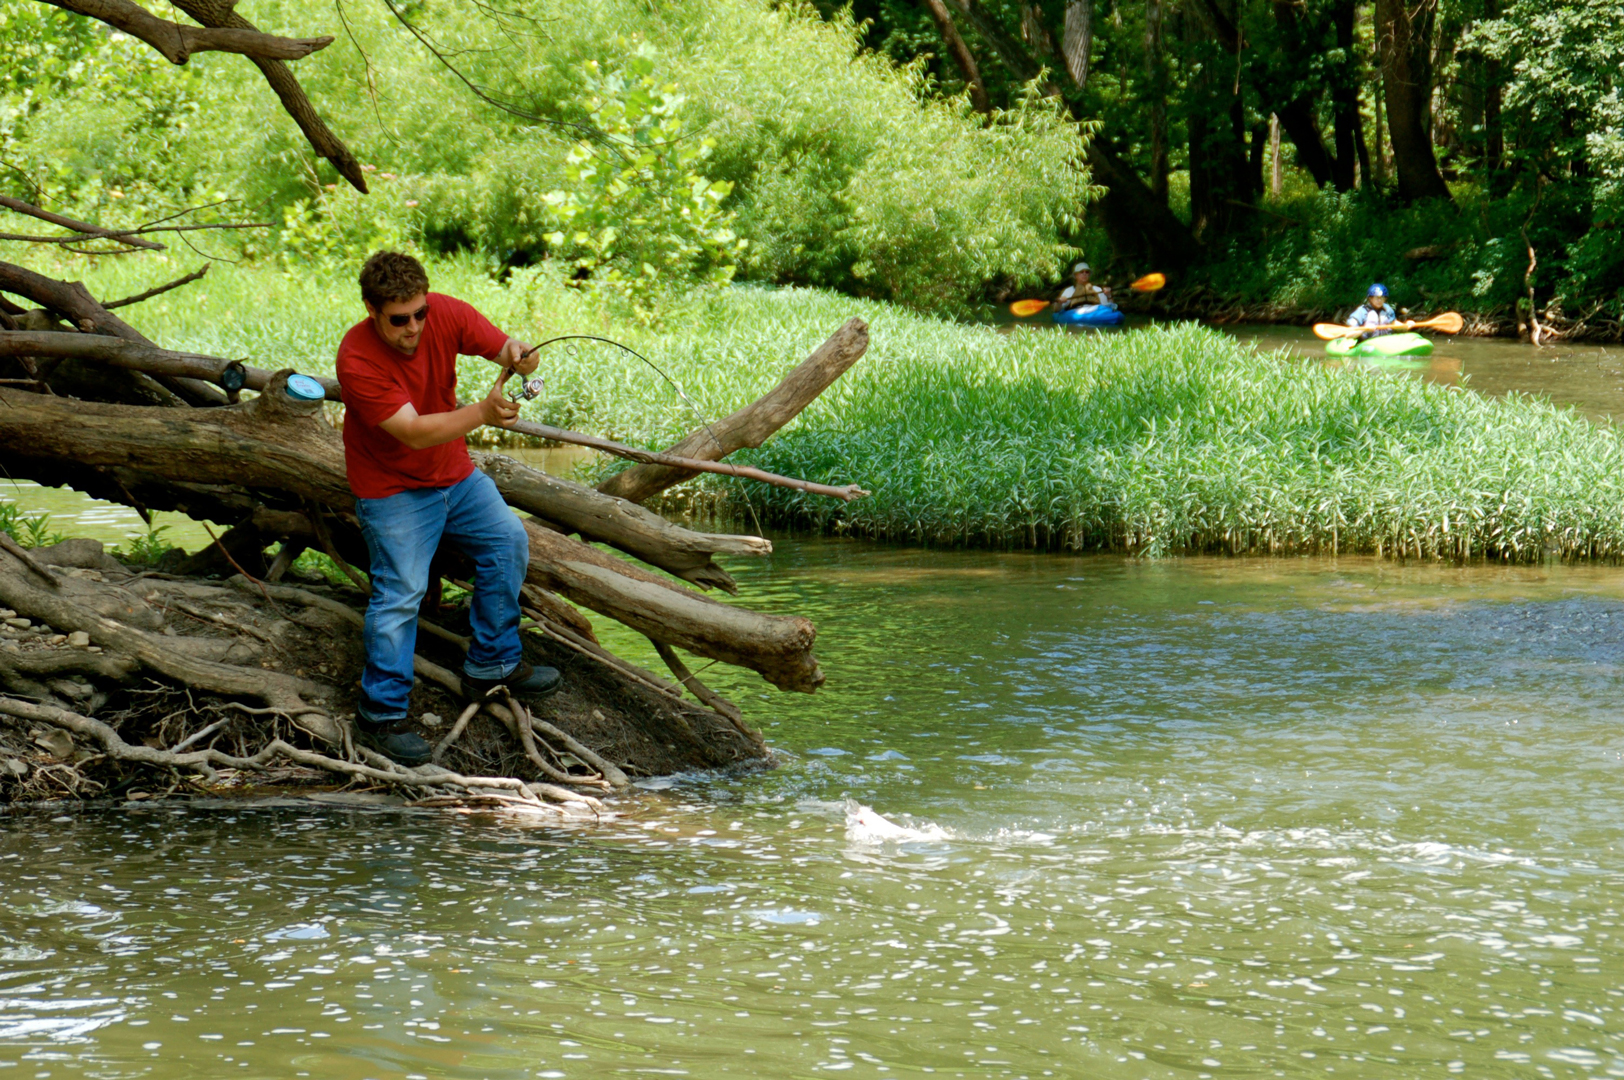 Man catches a fish from banks of Big Darby Creek in Battelle Darby Creek Metro Park.